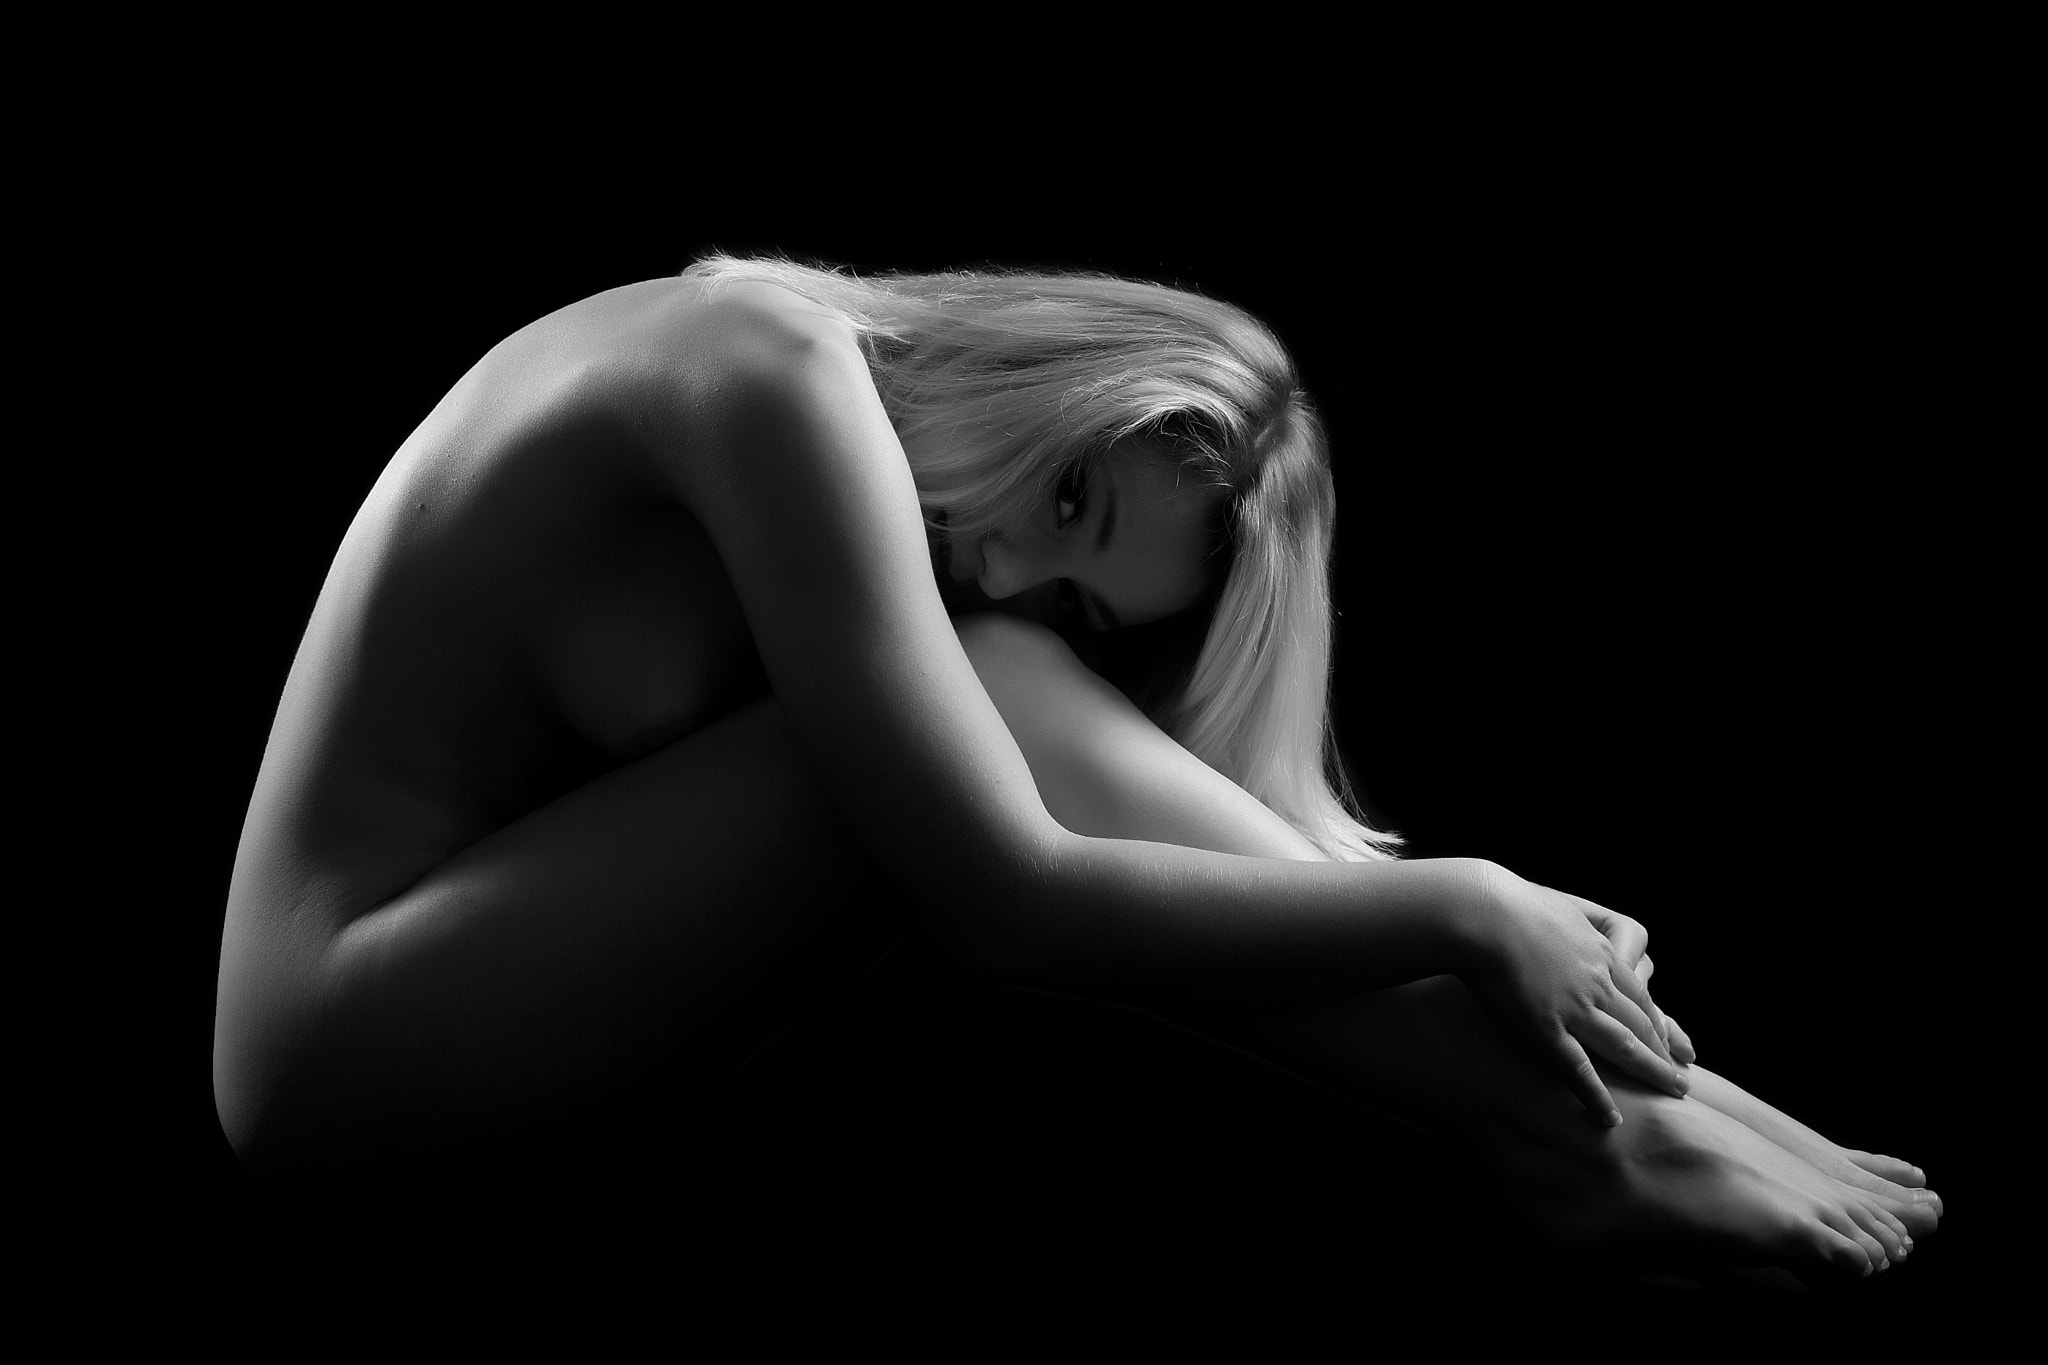 Photograph Nude Woman by Alexandre Cicconi on 500px